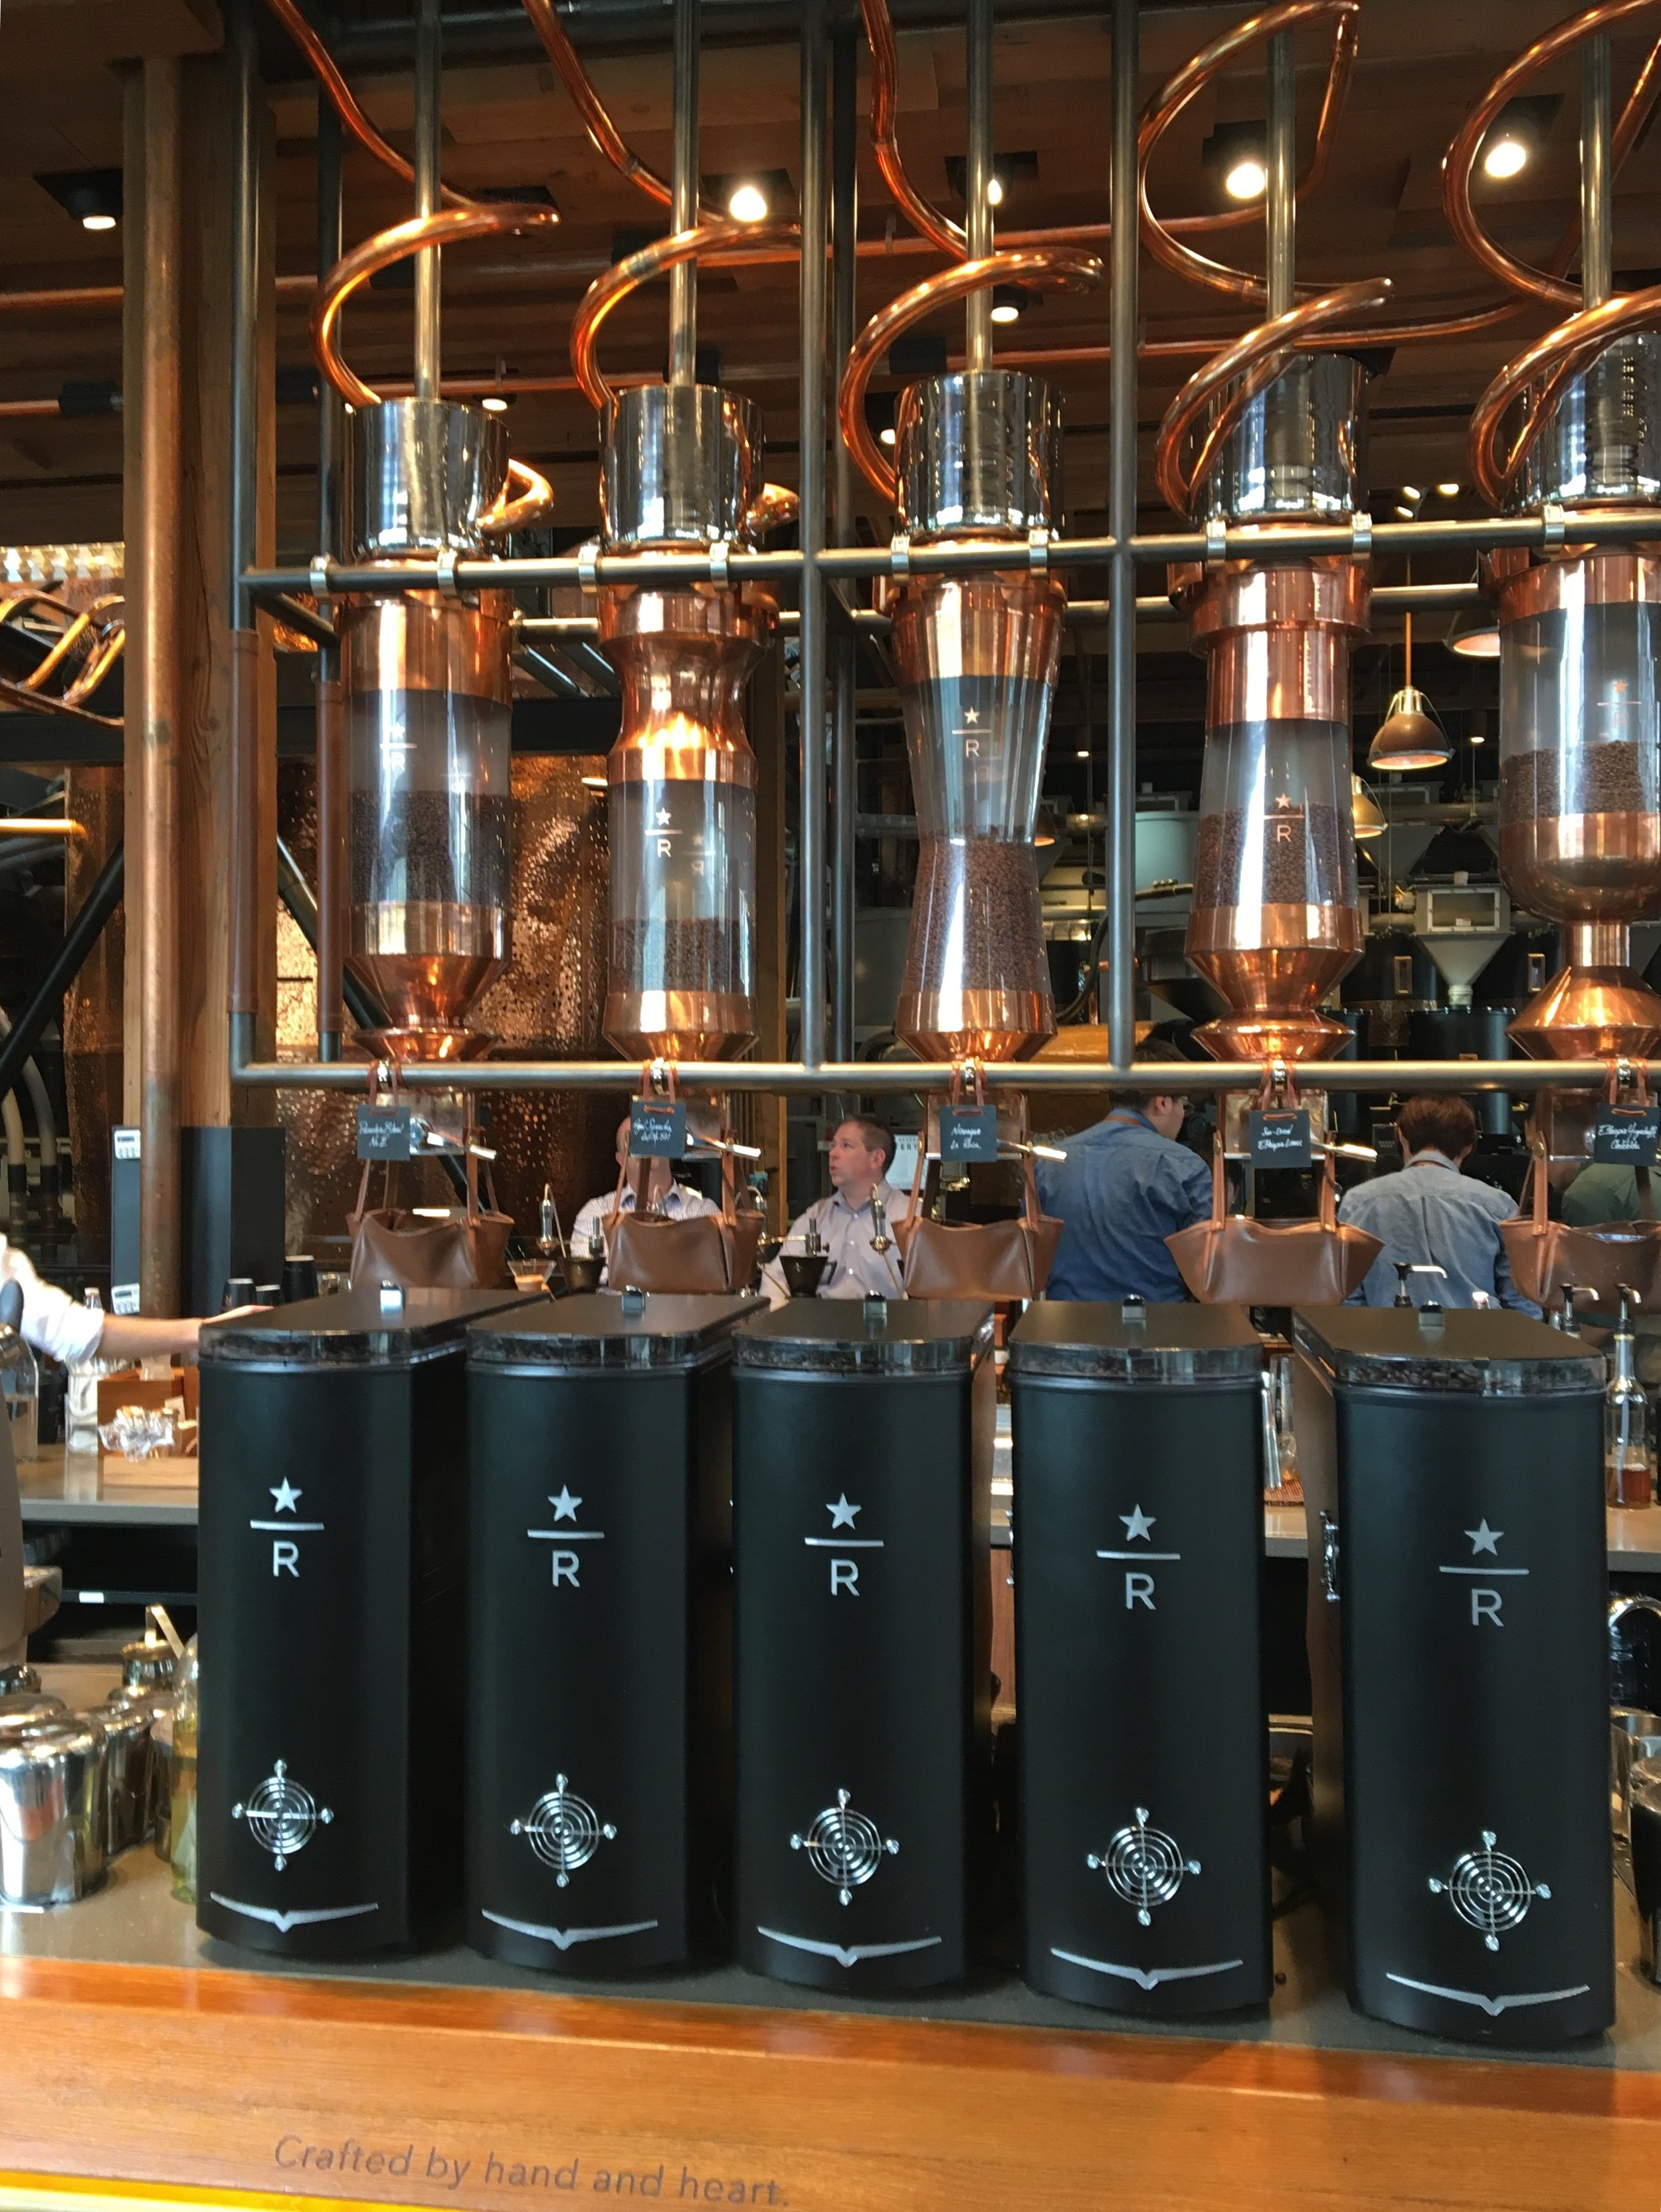 On top of finding the original Starbucks, we also stopped by the  Starbucks Reserve Roastery & Tasting room . It's the only one in the US at the moment. This was quite an experience. There was loud music playing (I felt like I was at club), everything was rose gold and the whole place was just buzzing. I ordered an affogato and Dan a latte that had hints of butterscotch and pepper, if I recall correctly. It only cost us a cool $20...